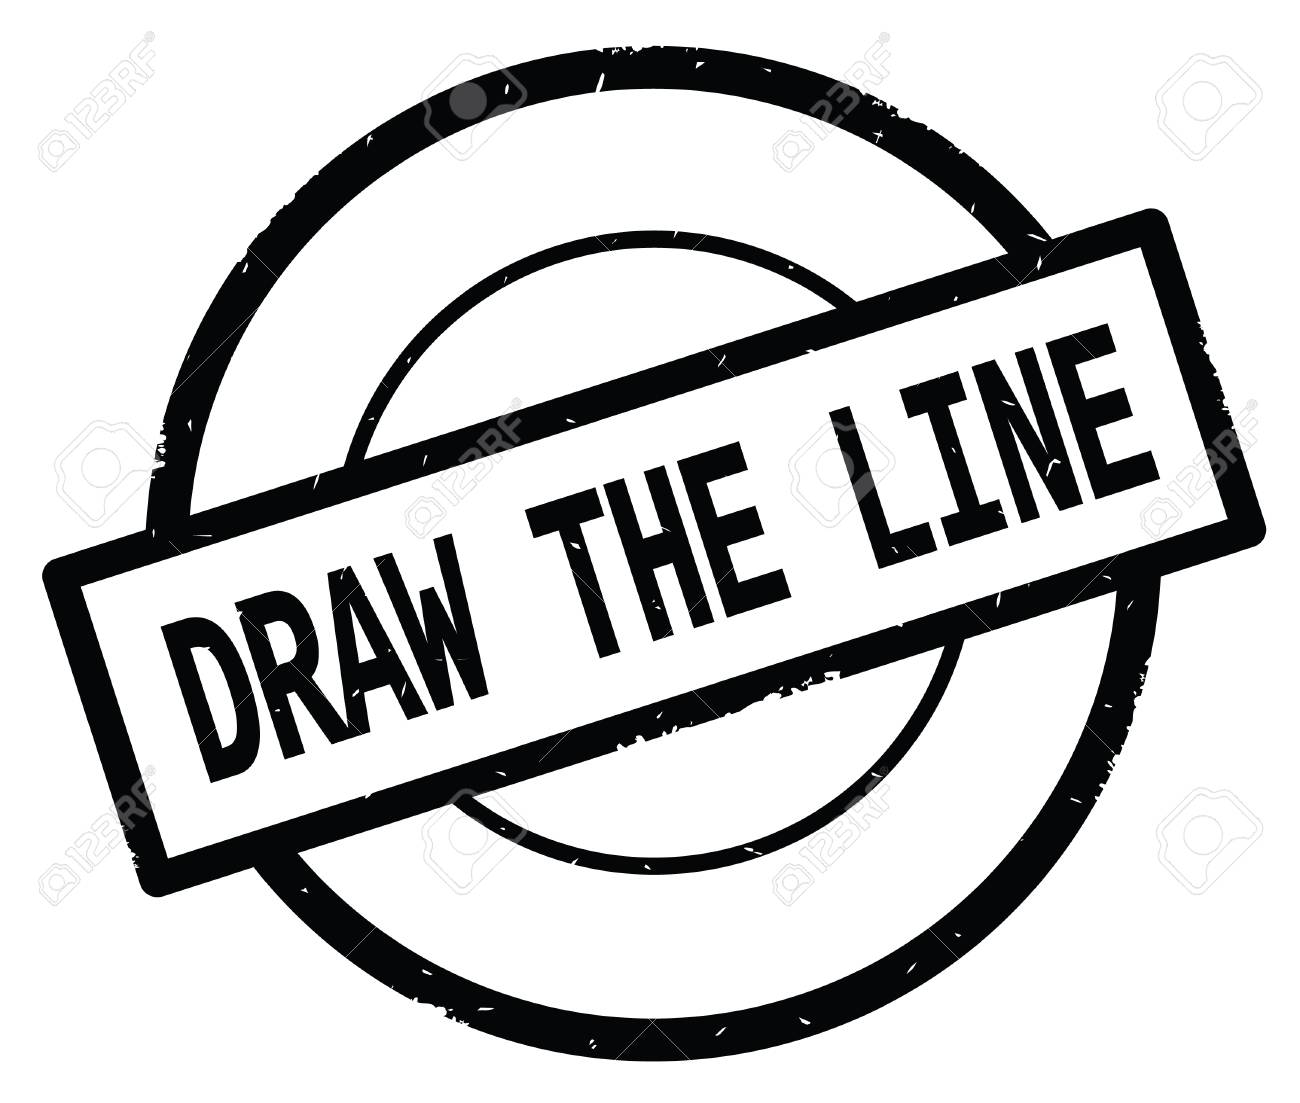 Draw The Line Text Written On Black Simple Circle Rubber Vintage